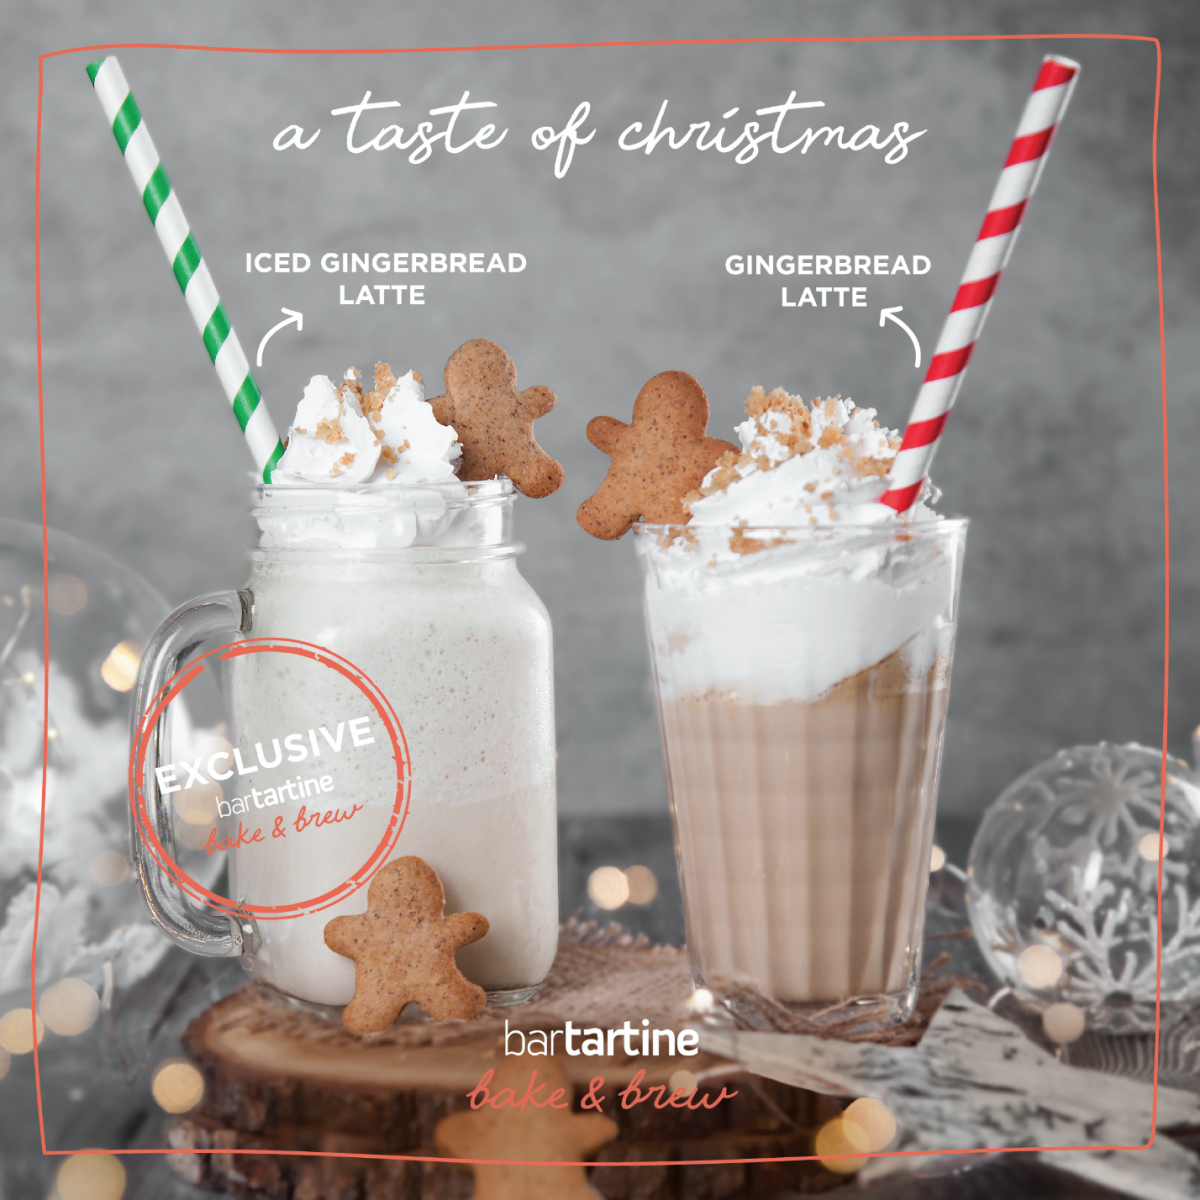 A Taste of Christmas: Gingerbread Latte!